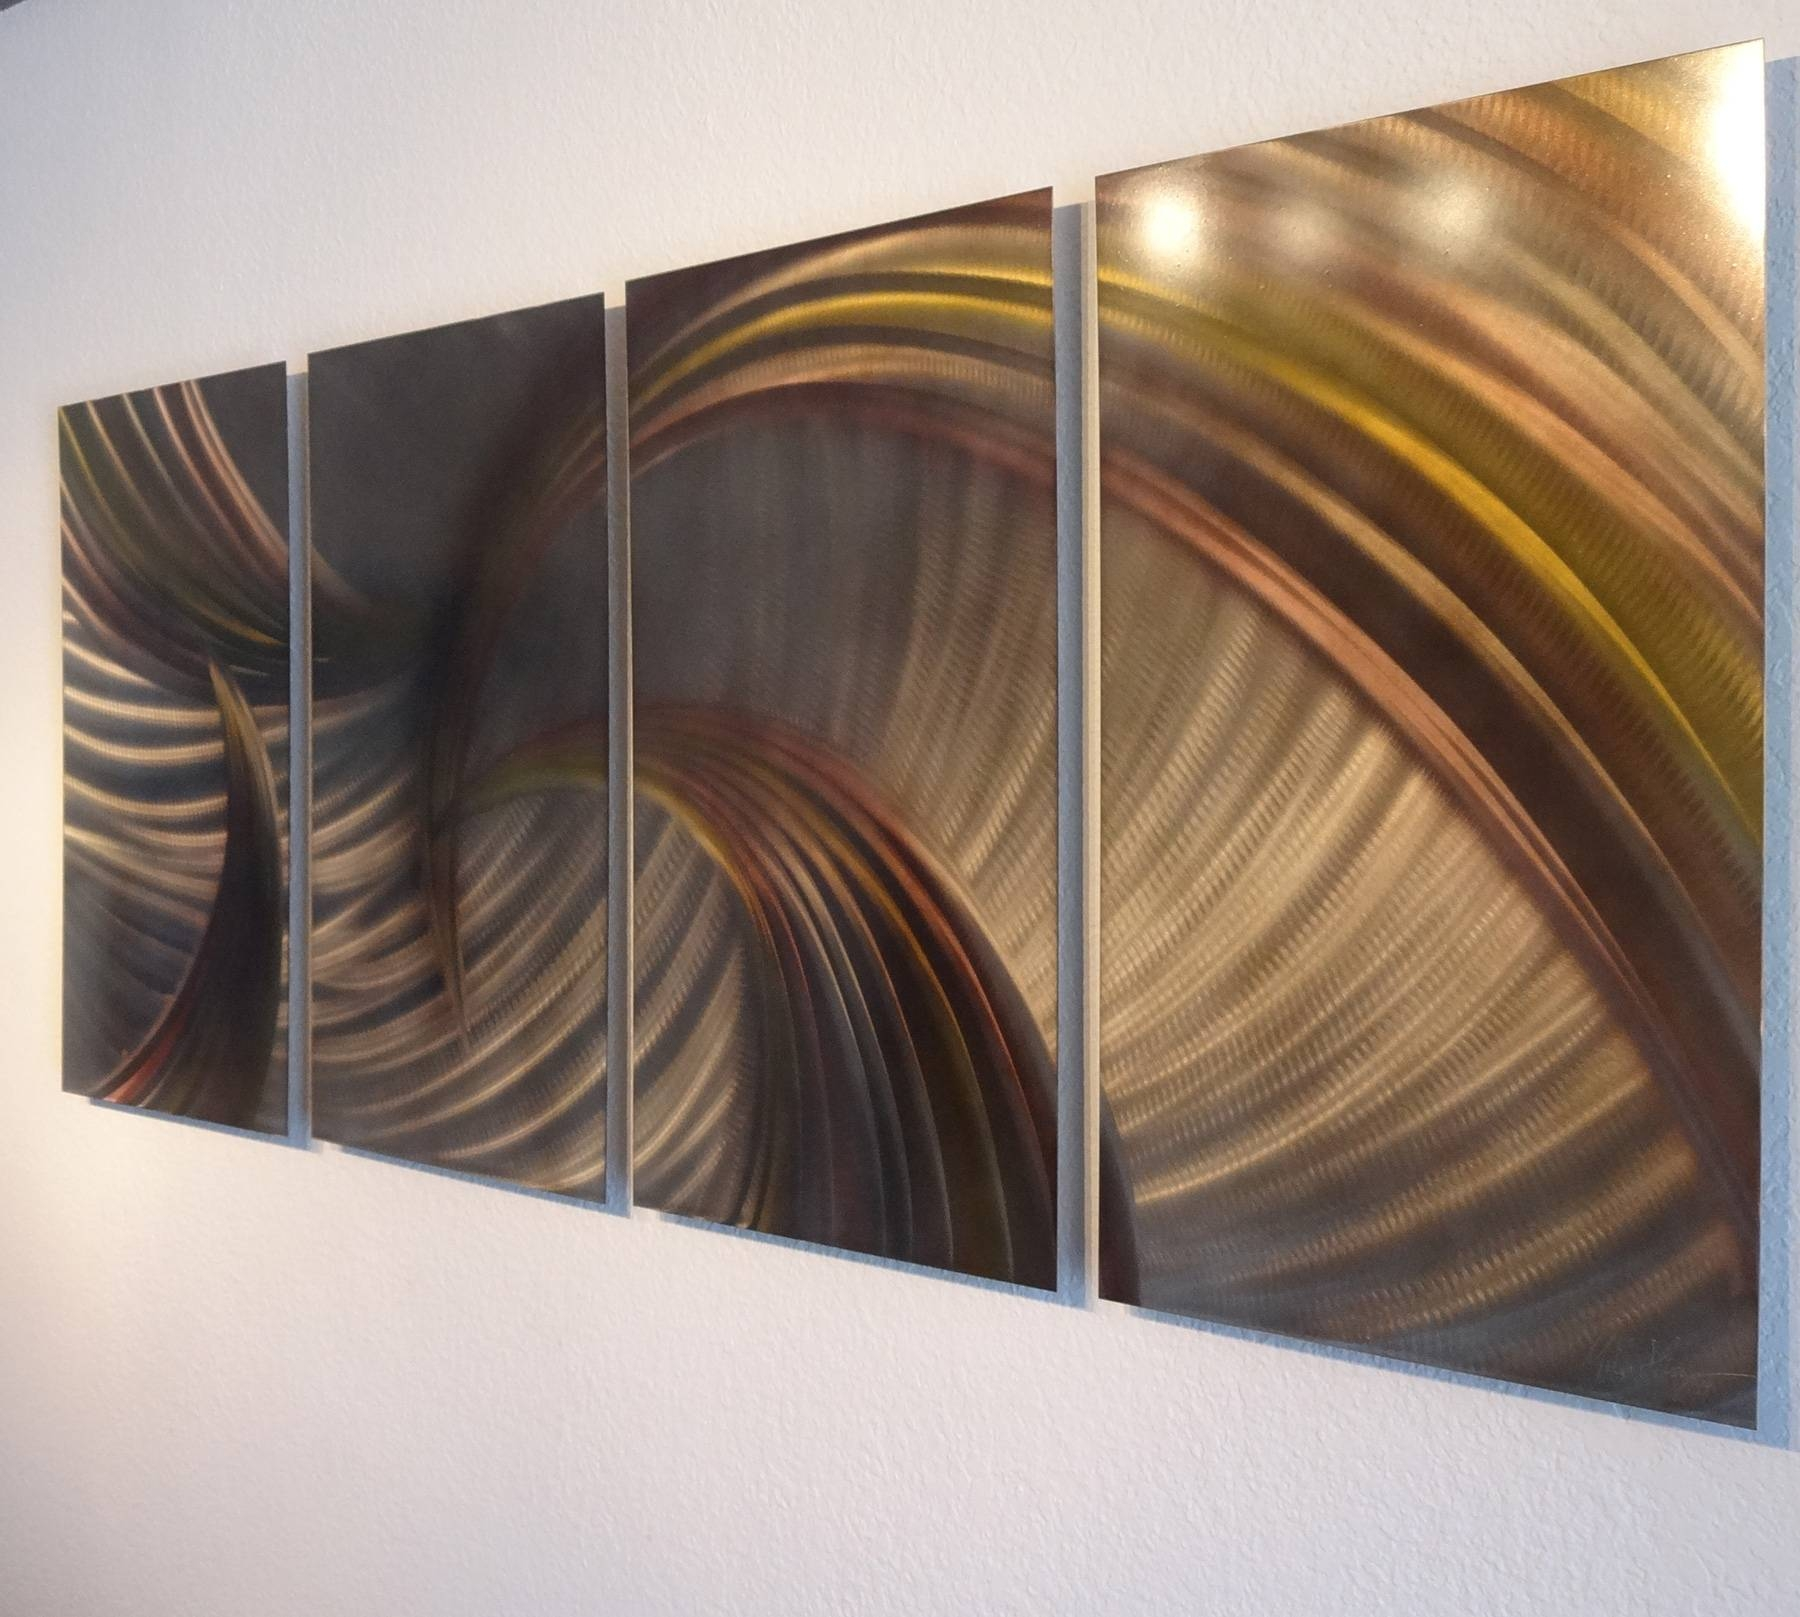 Tempest Bronze – Abstract Metal Wall Art Contemporary Modern Decor Within Most Recent Bronze Metal Wall Art (View 16 of 20)